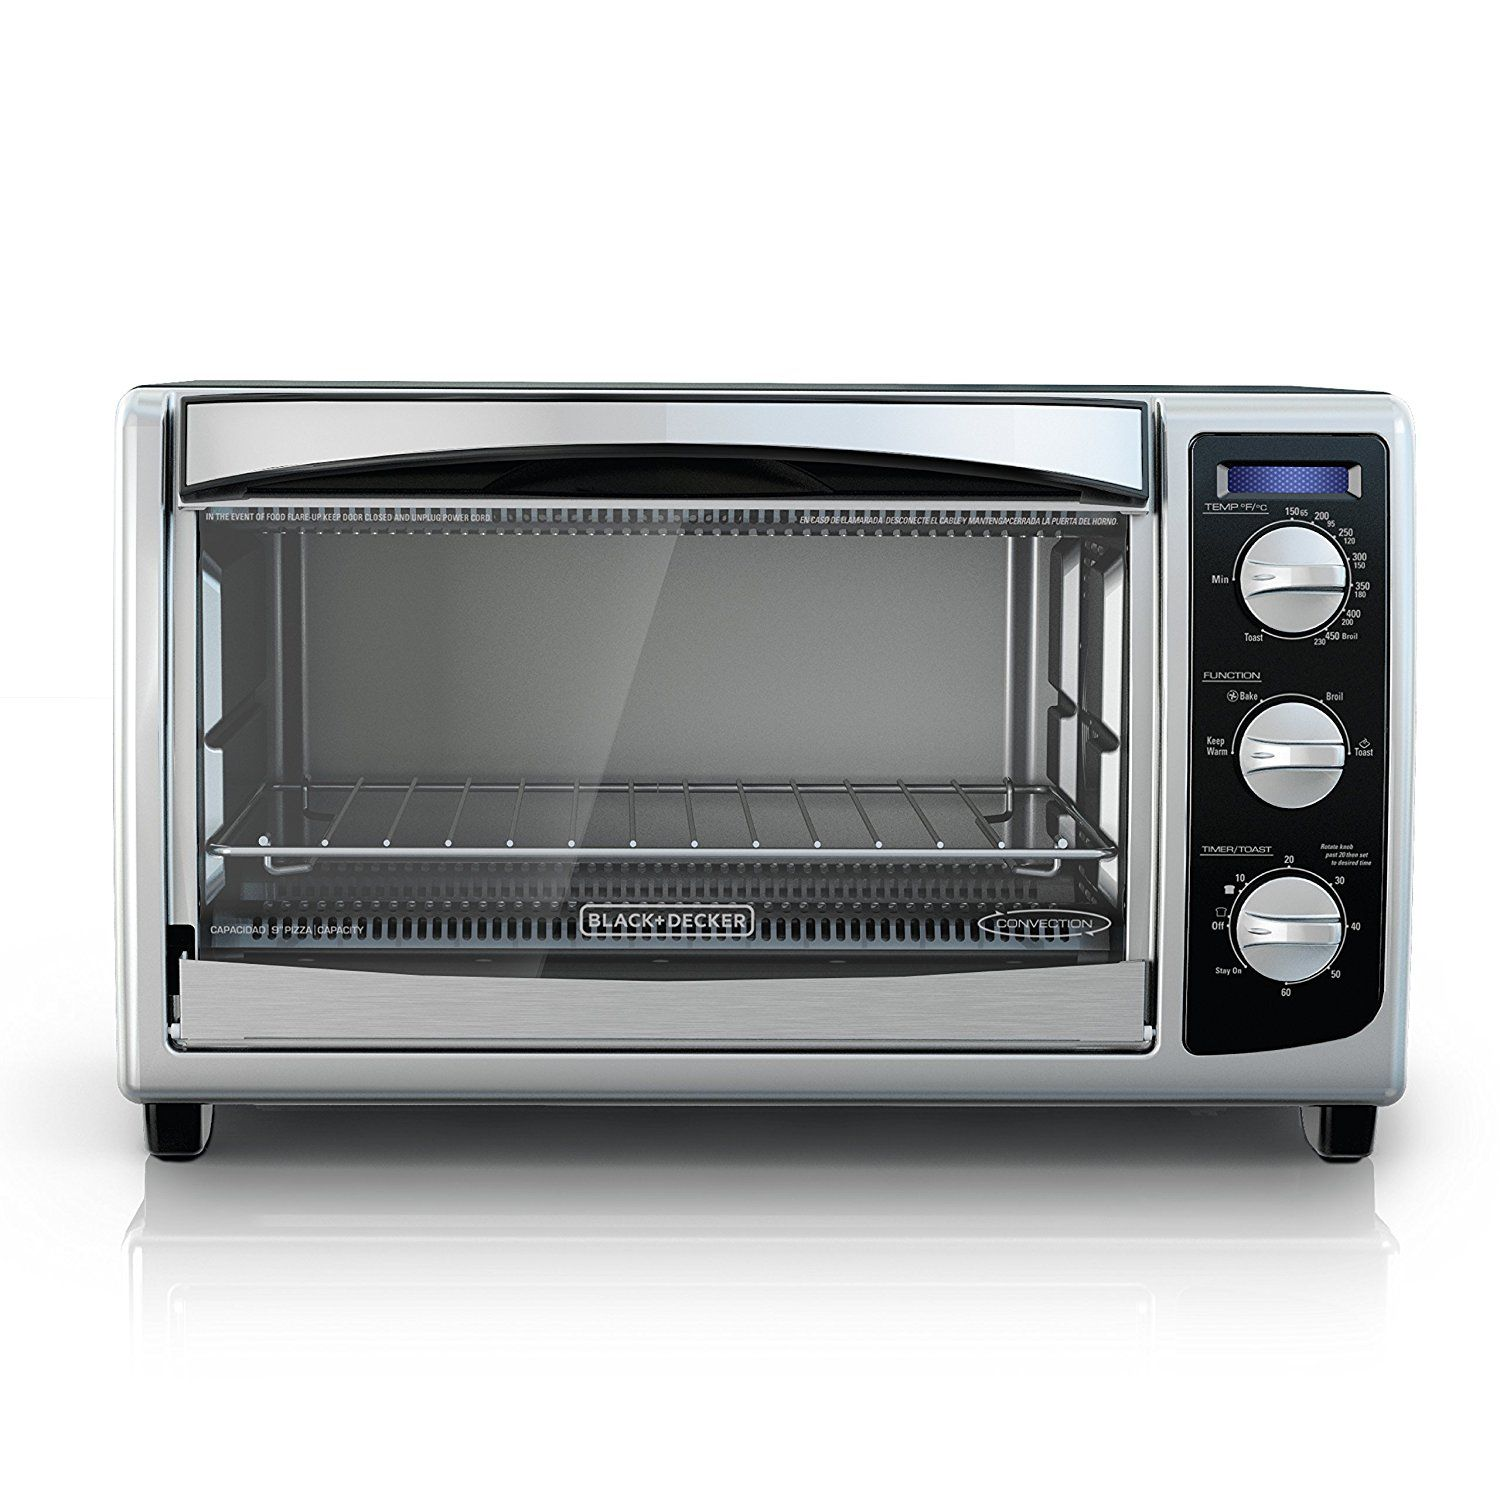 Black Decker To1675b 6 Slice Convection Countertop Toaster Oven